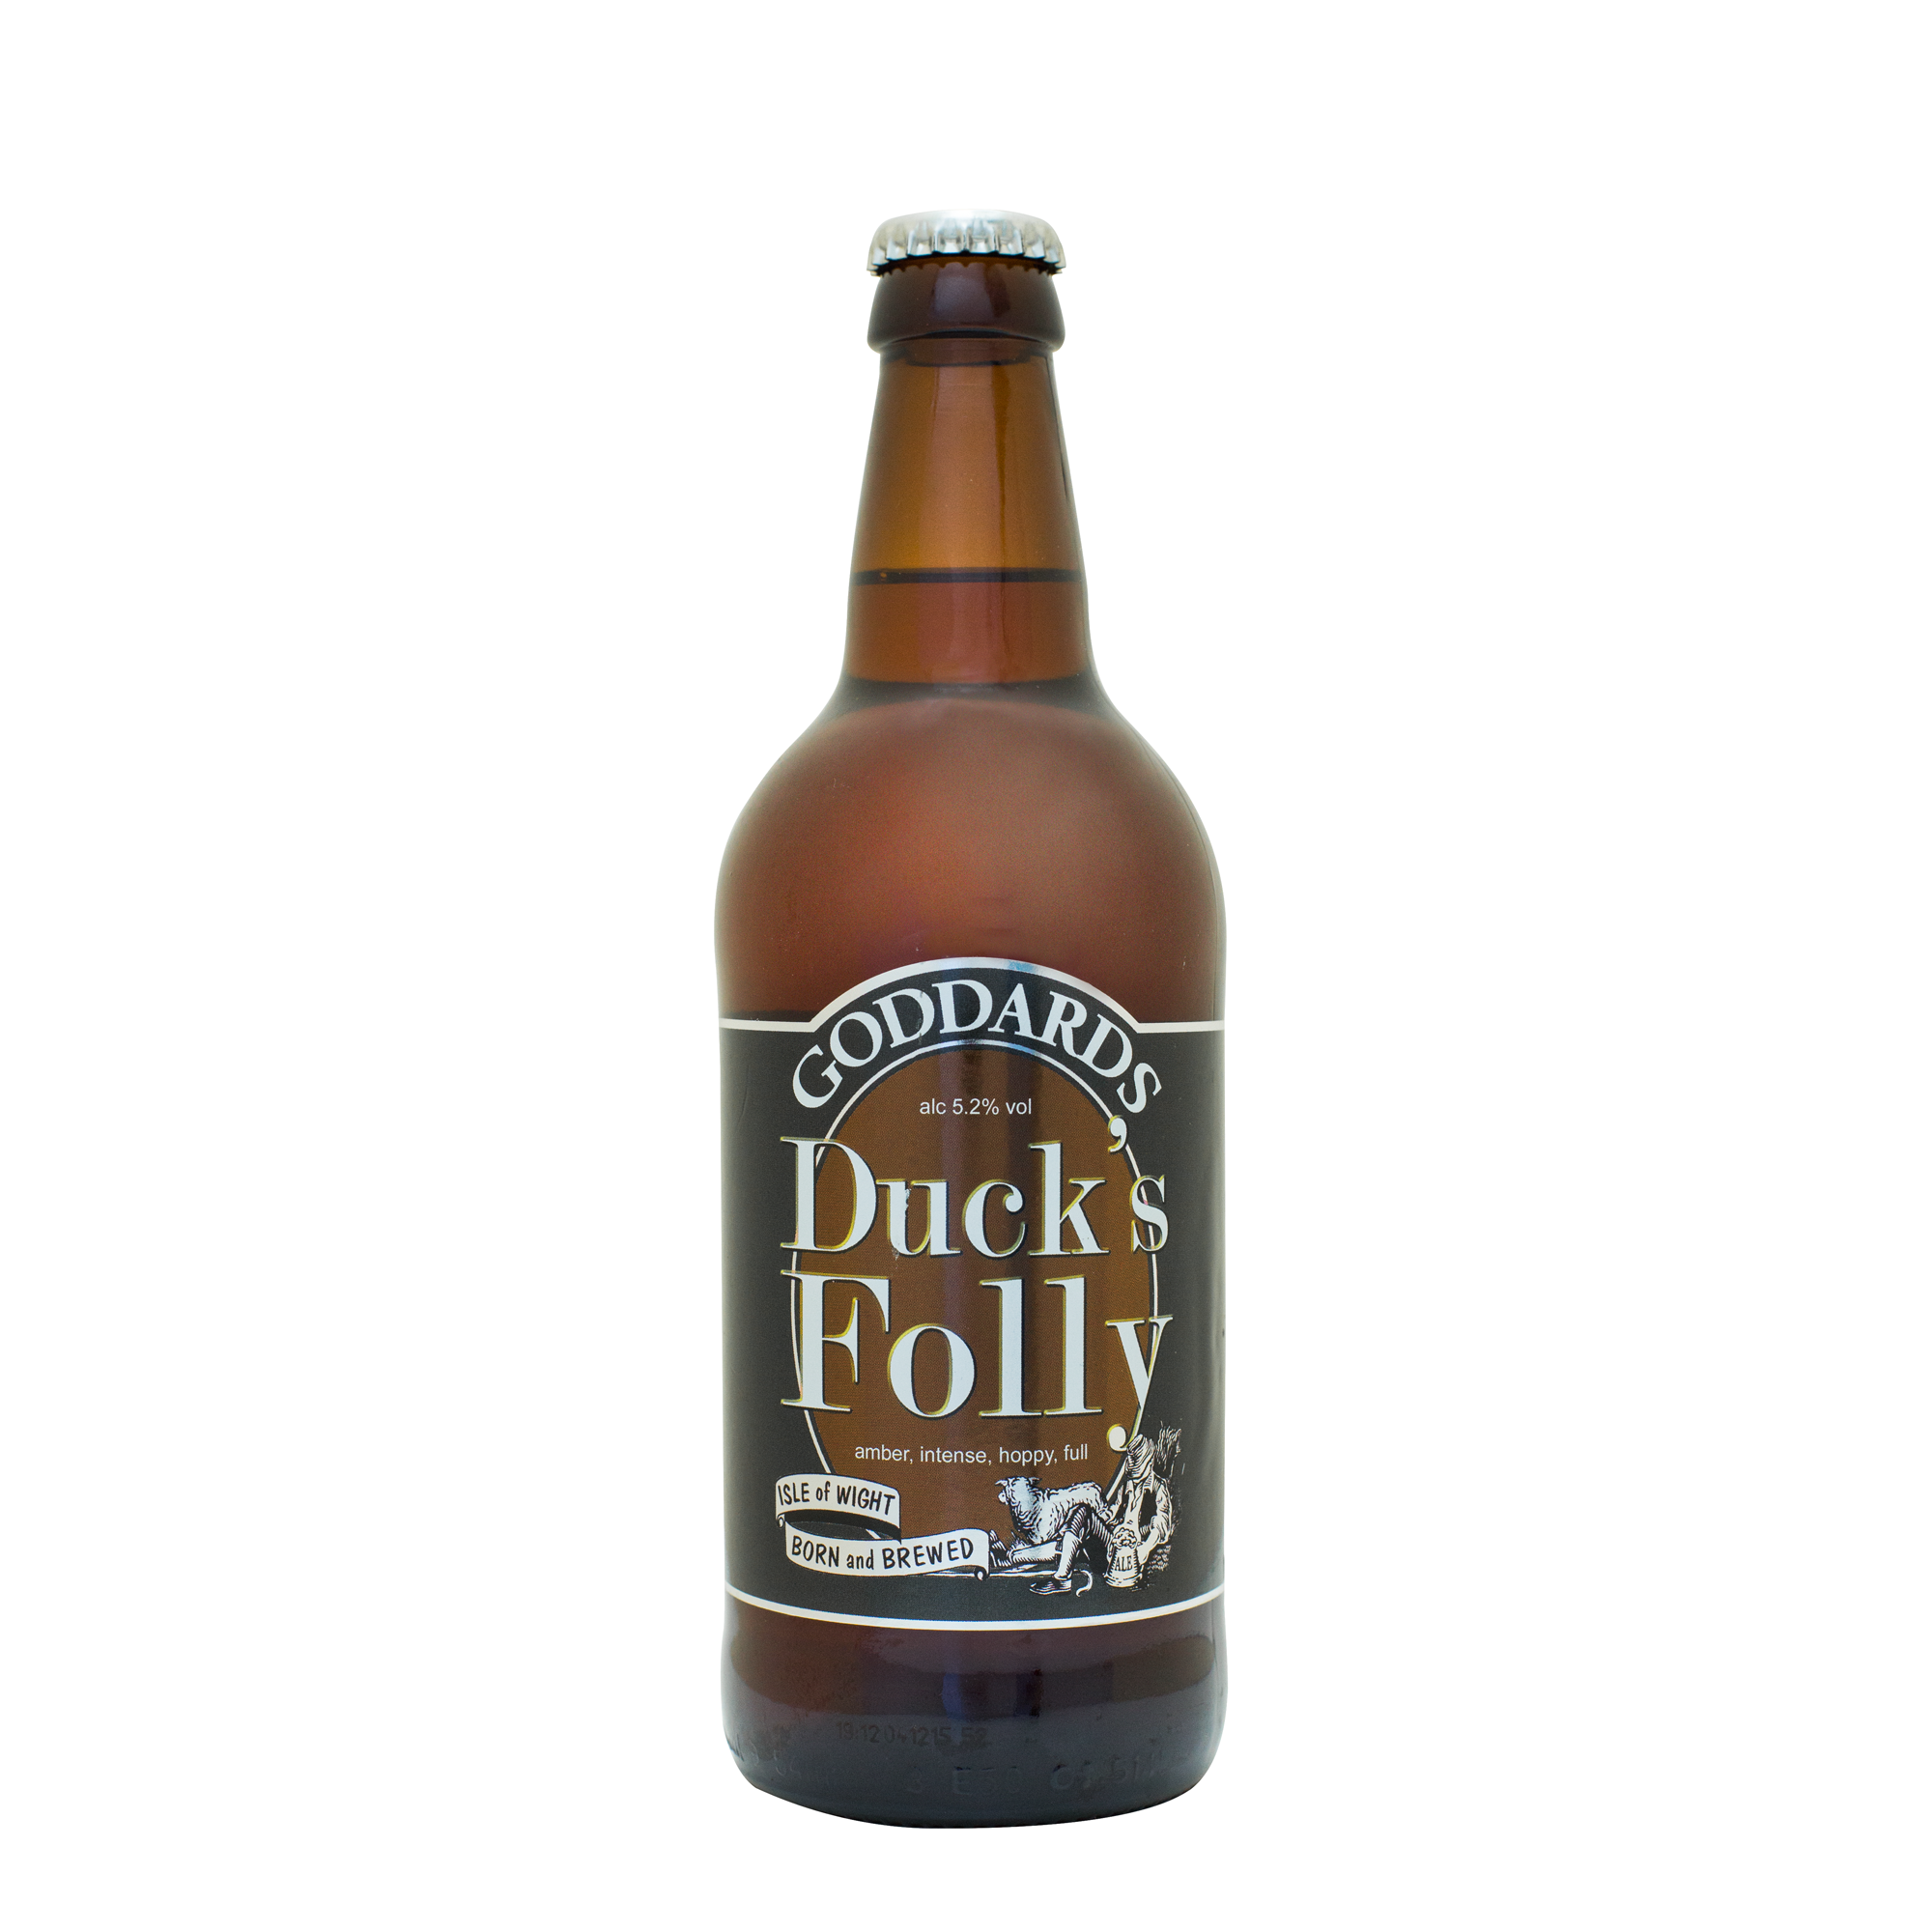 Goddards Brewery - Ducks Folly